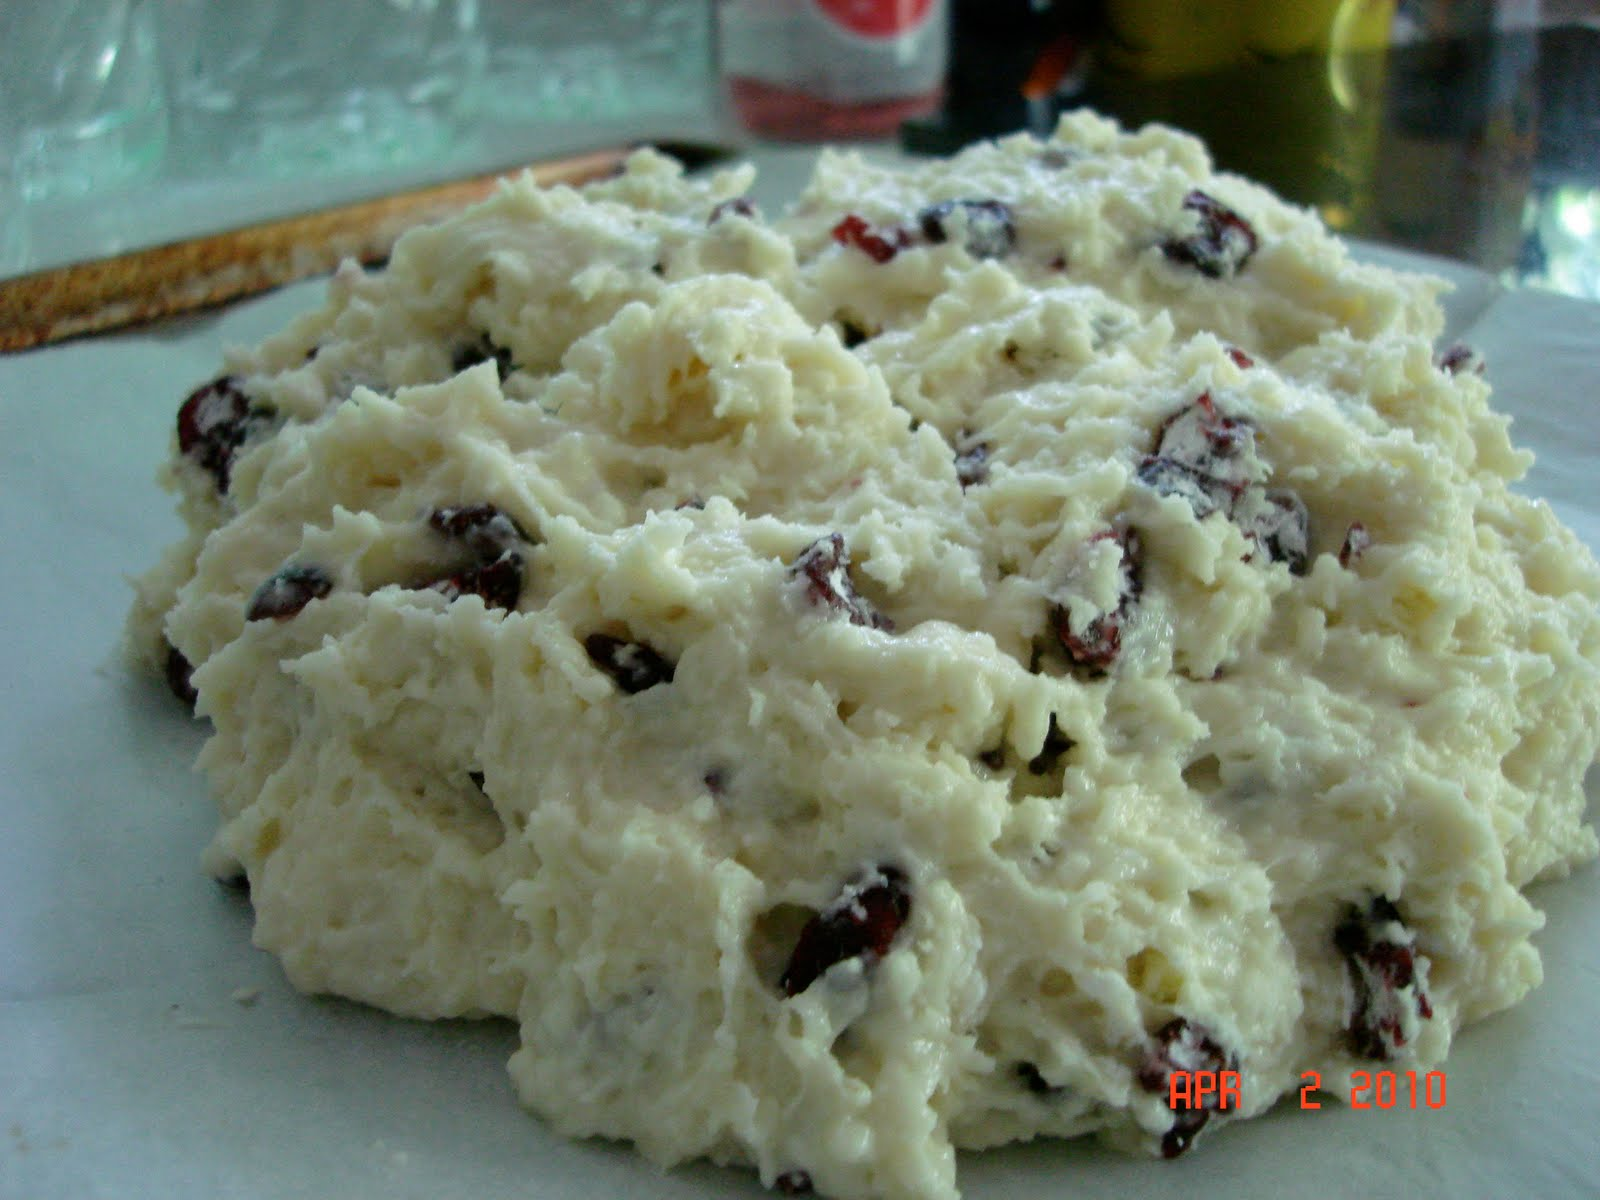 Letters from Thailand: Irish Soda Bread with Cranberries and Almonds